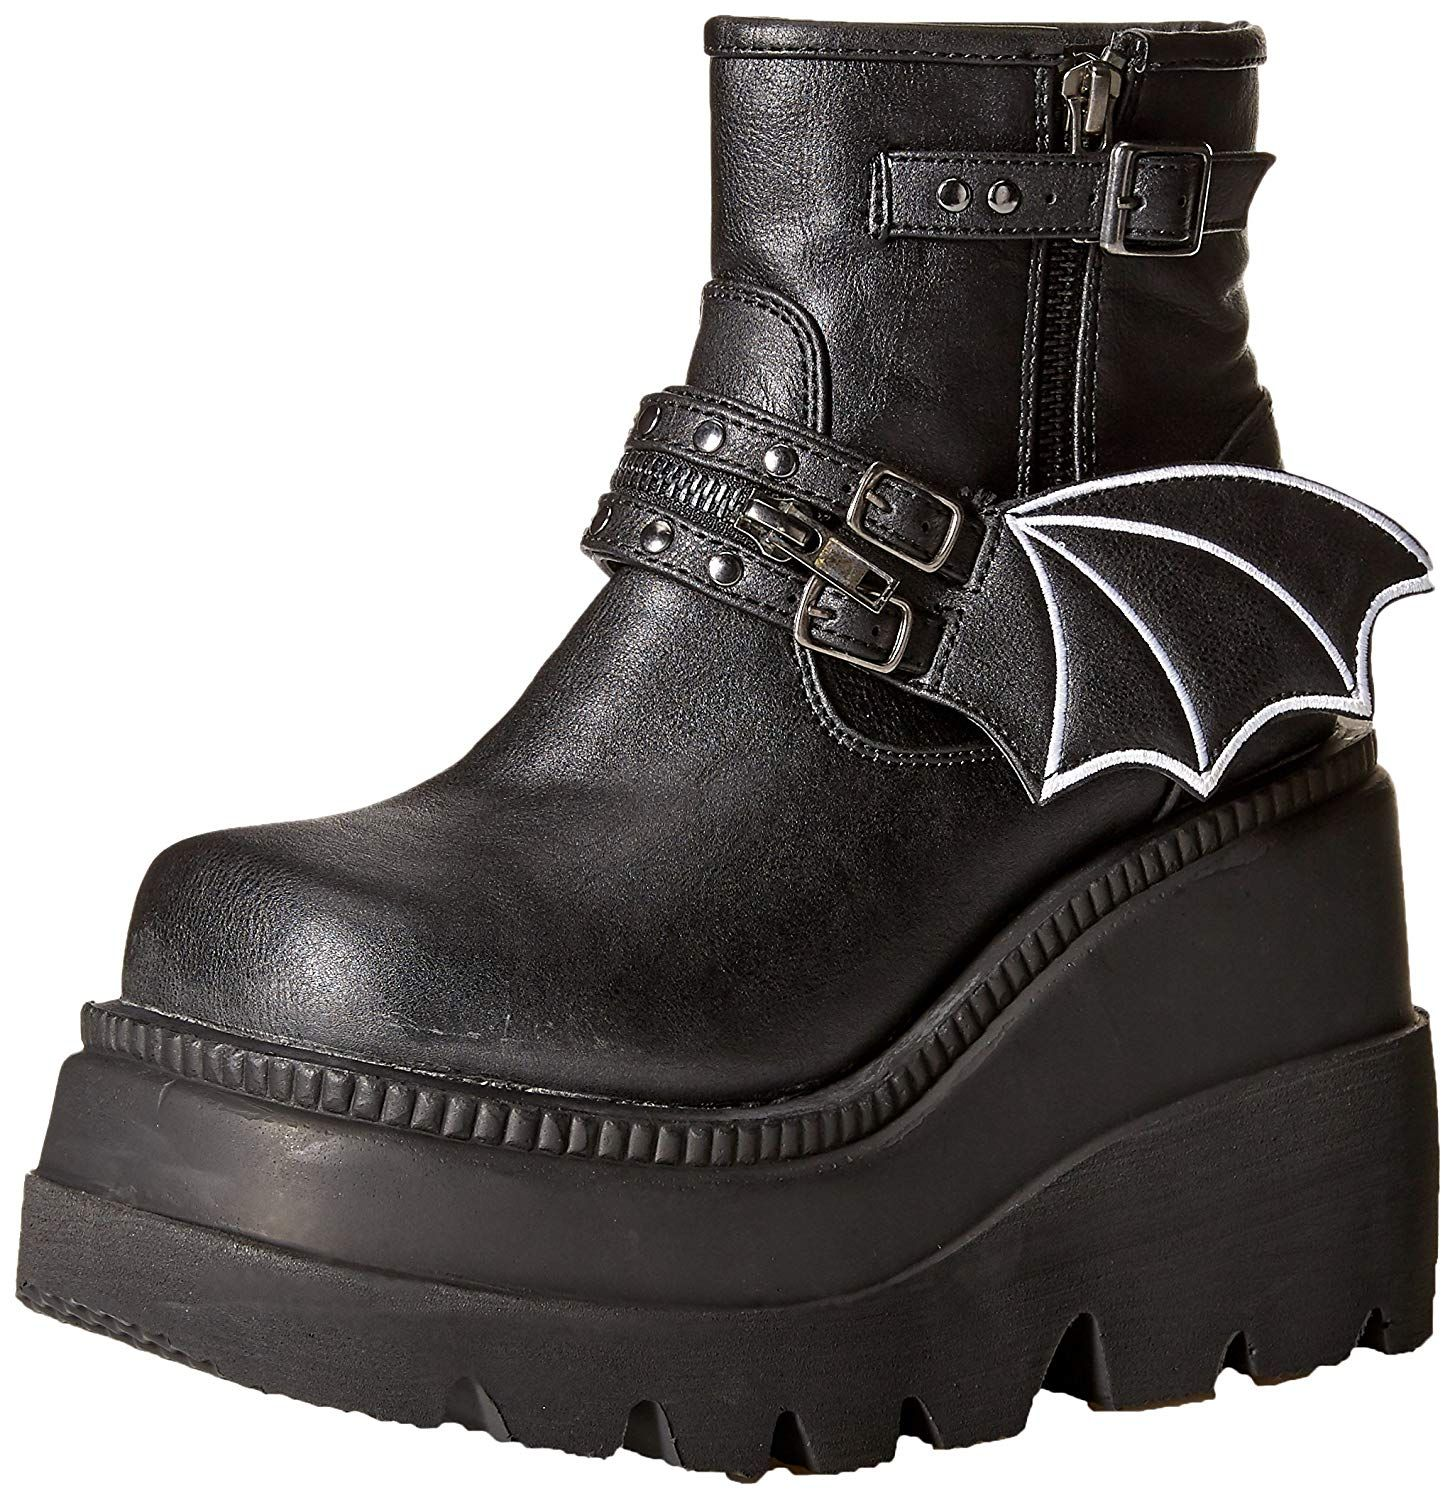 2257a6ce807 Demonia Women's SHAKER-55 Ankle Boot, >>> We appreciate you for ...